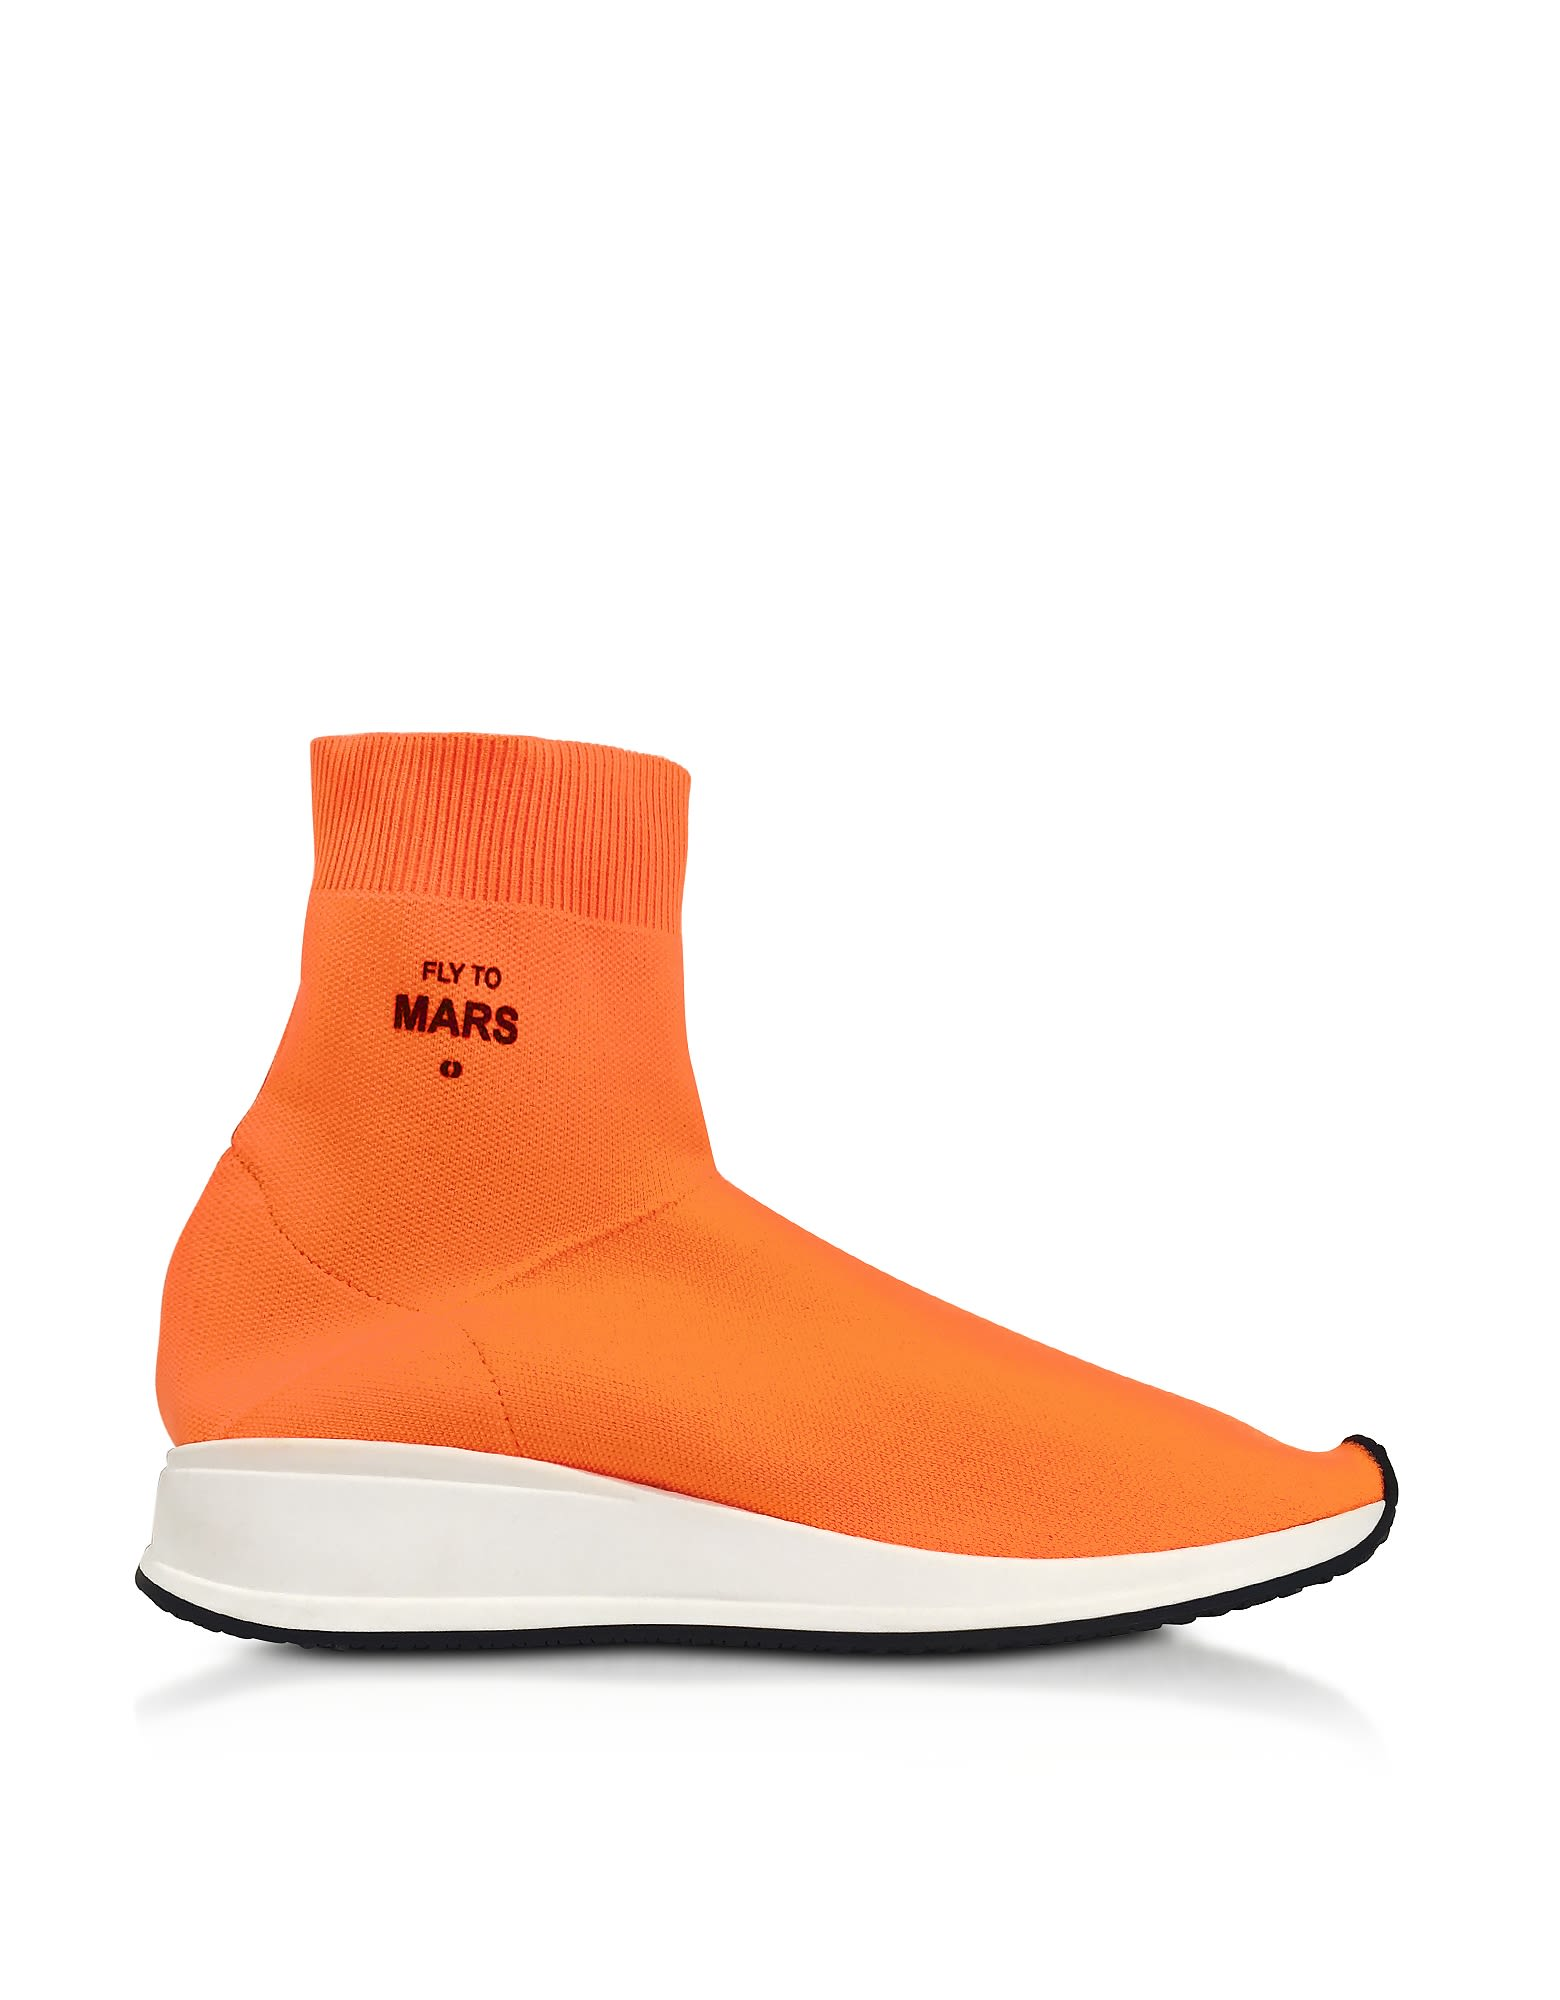 JOSHUA SANDERS Designer Shoes, Fly To Mars Neon Nylon Sock Sneakers